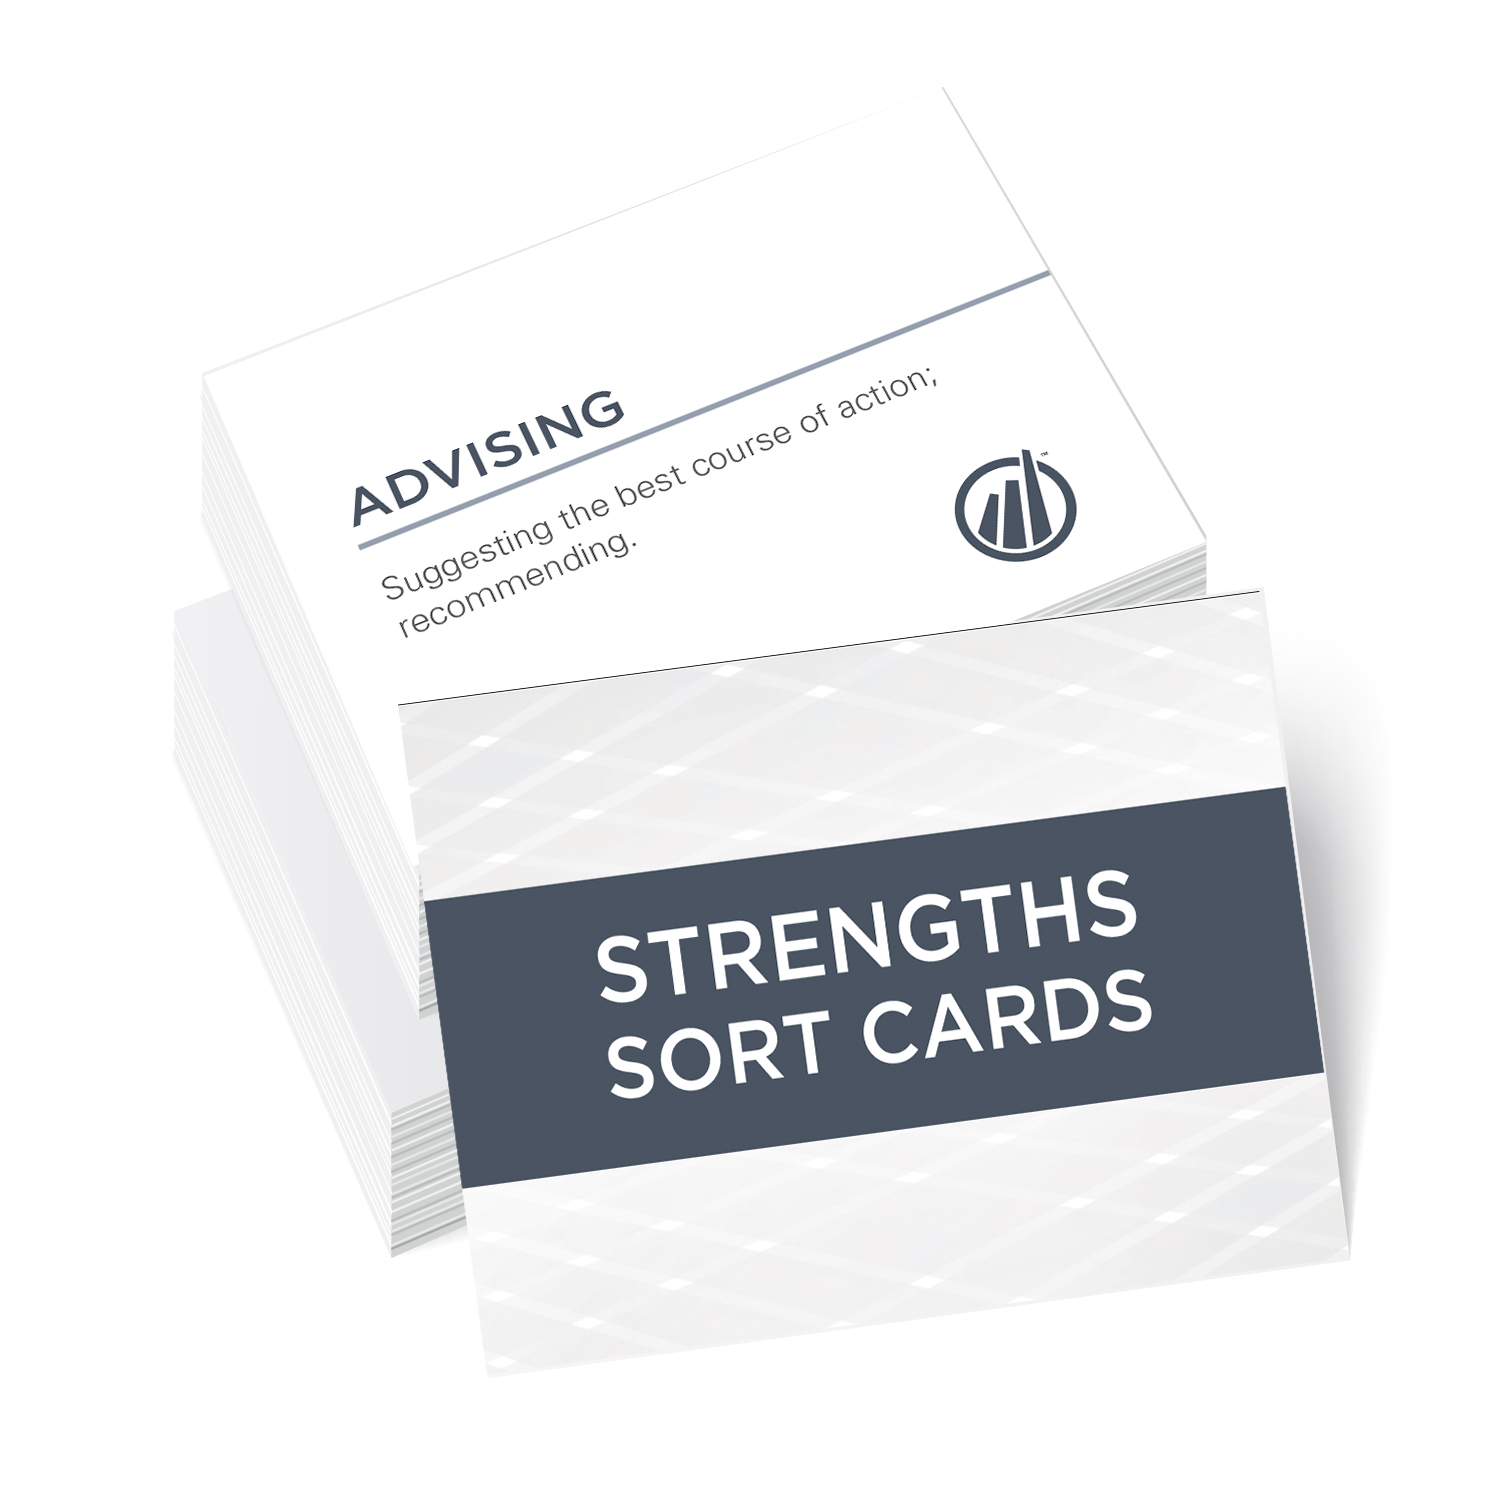 Image of Strengths Sort cards